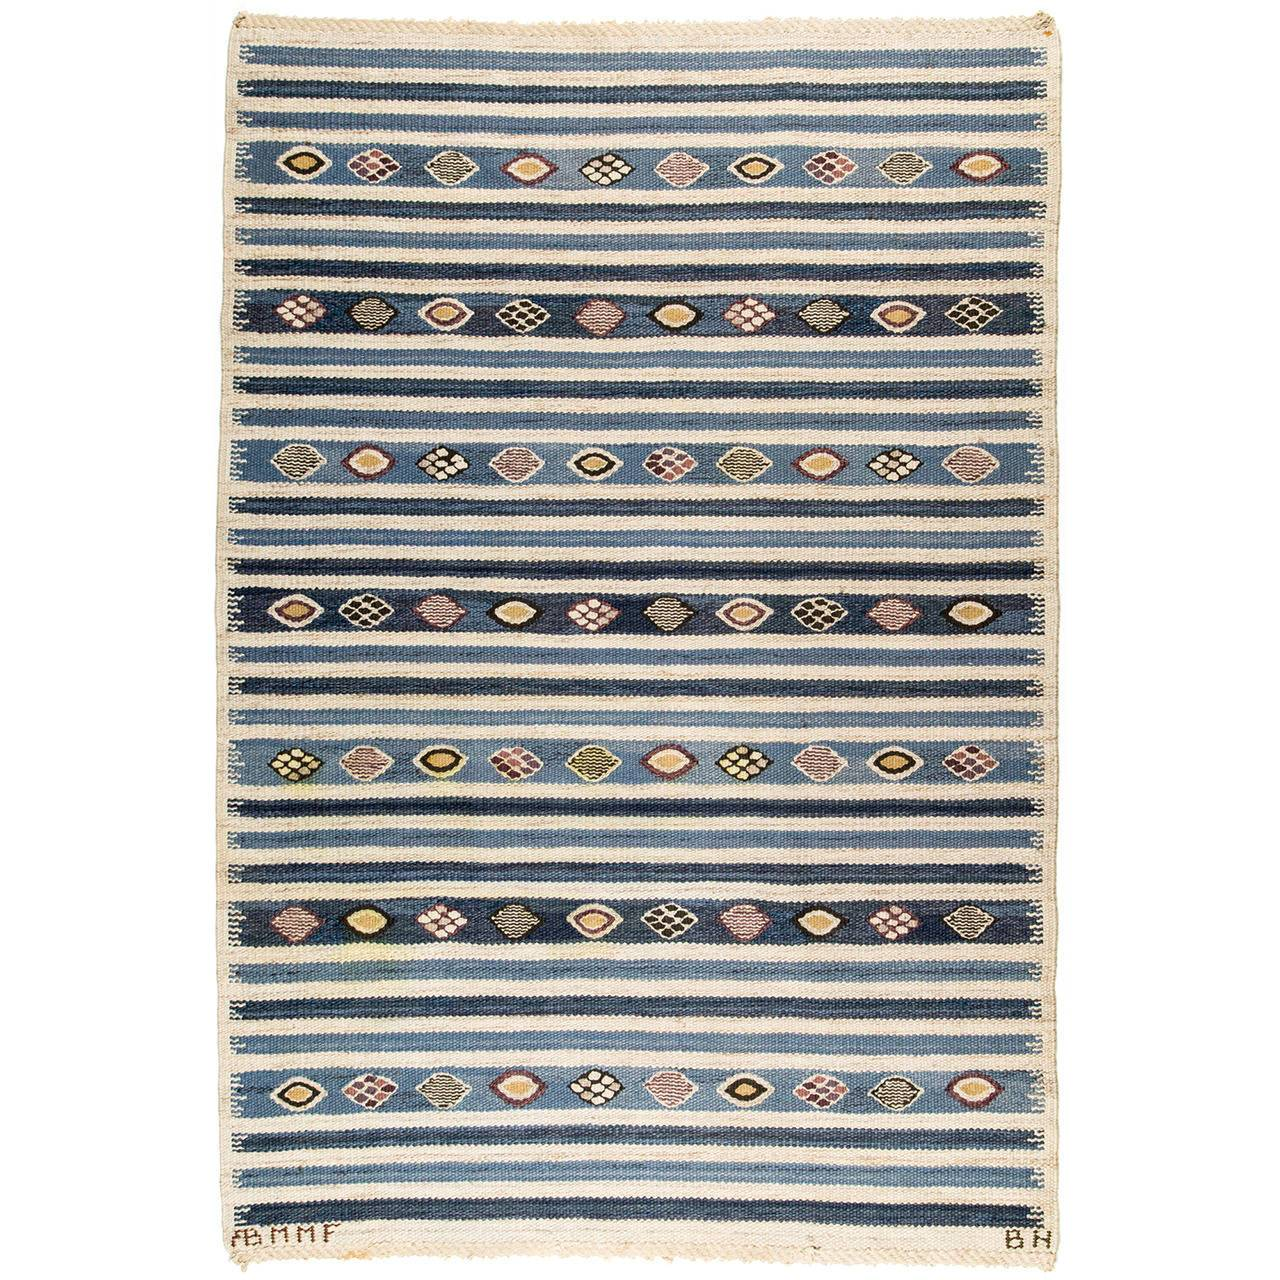 [SOLD] Barbro Nilsson for Märta Måås-Fjetterström AB Carpet, 1940s - The Exchange Int